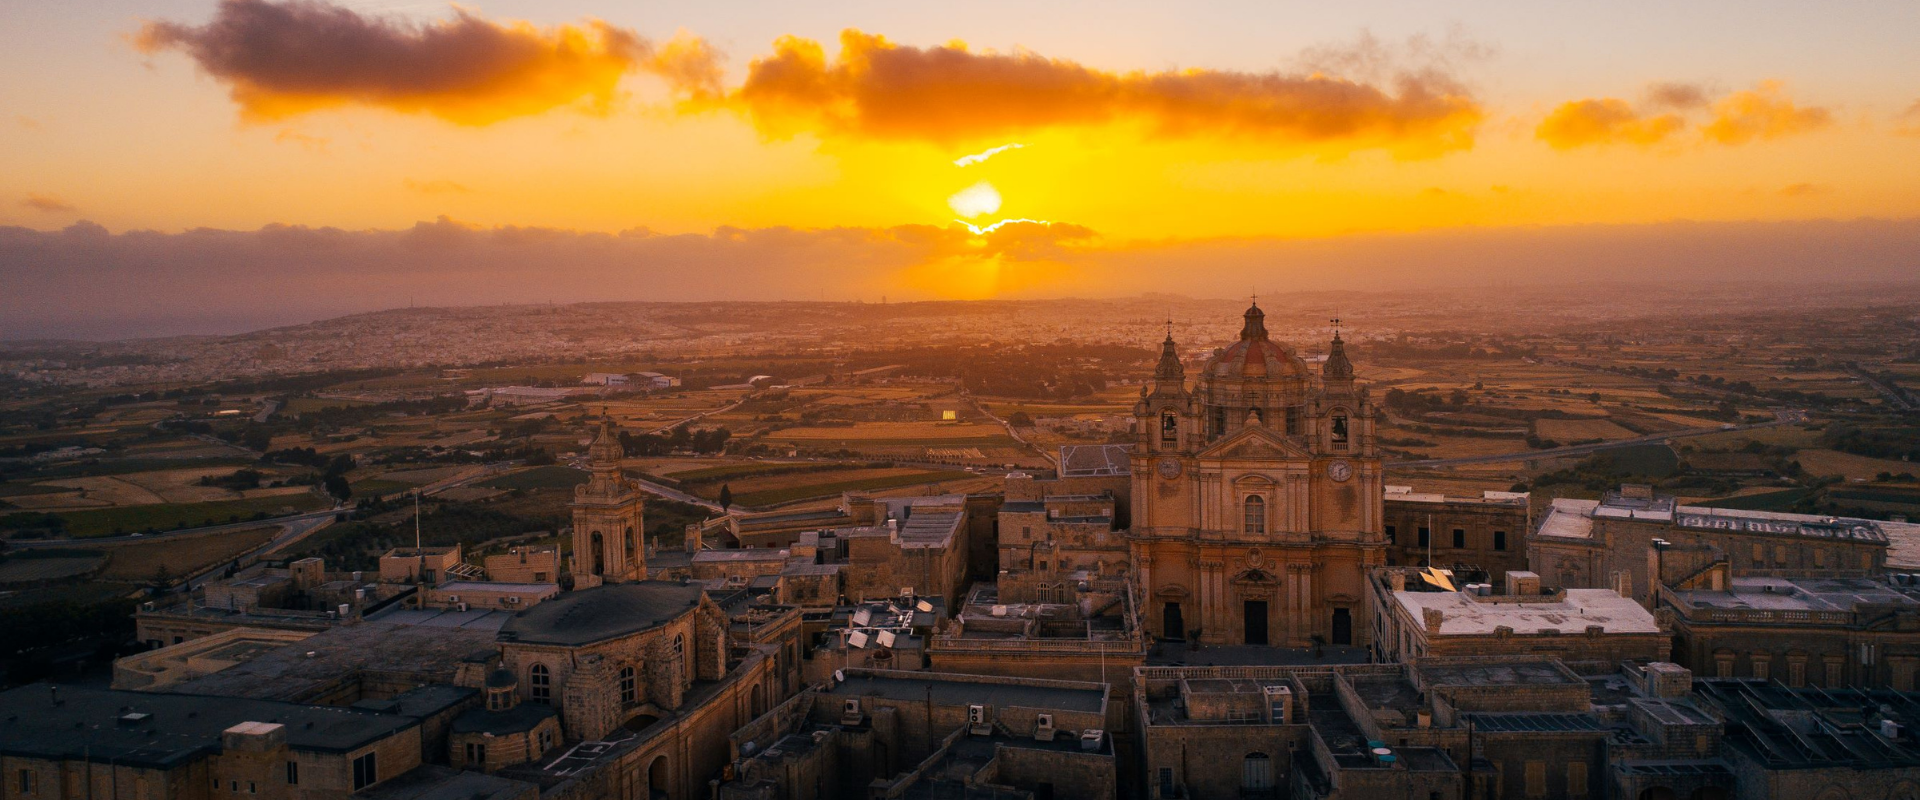 Mdina at Sunrise